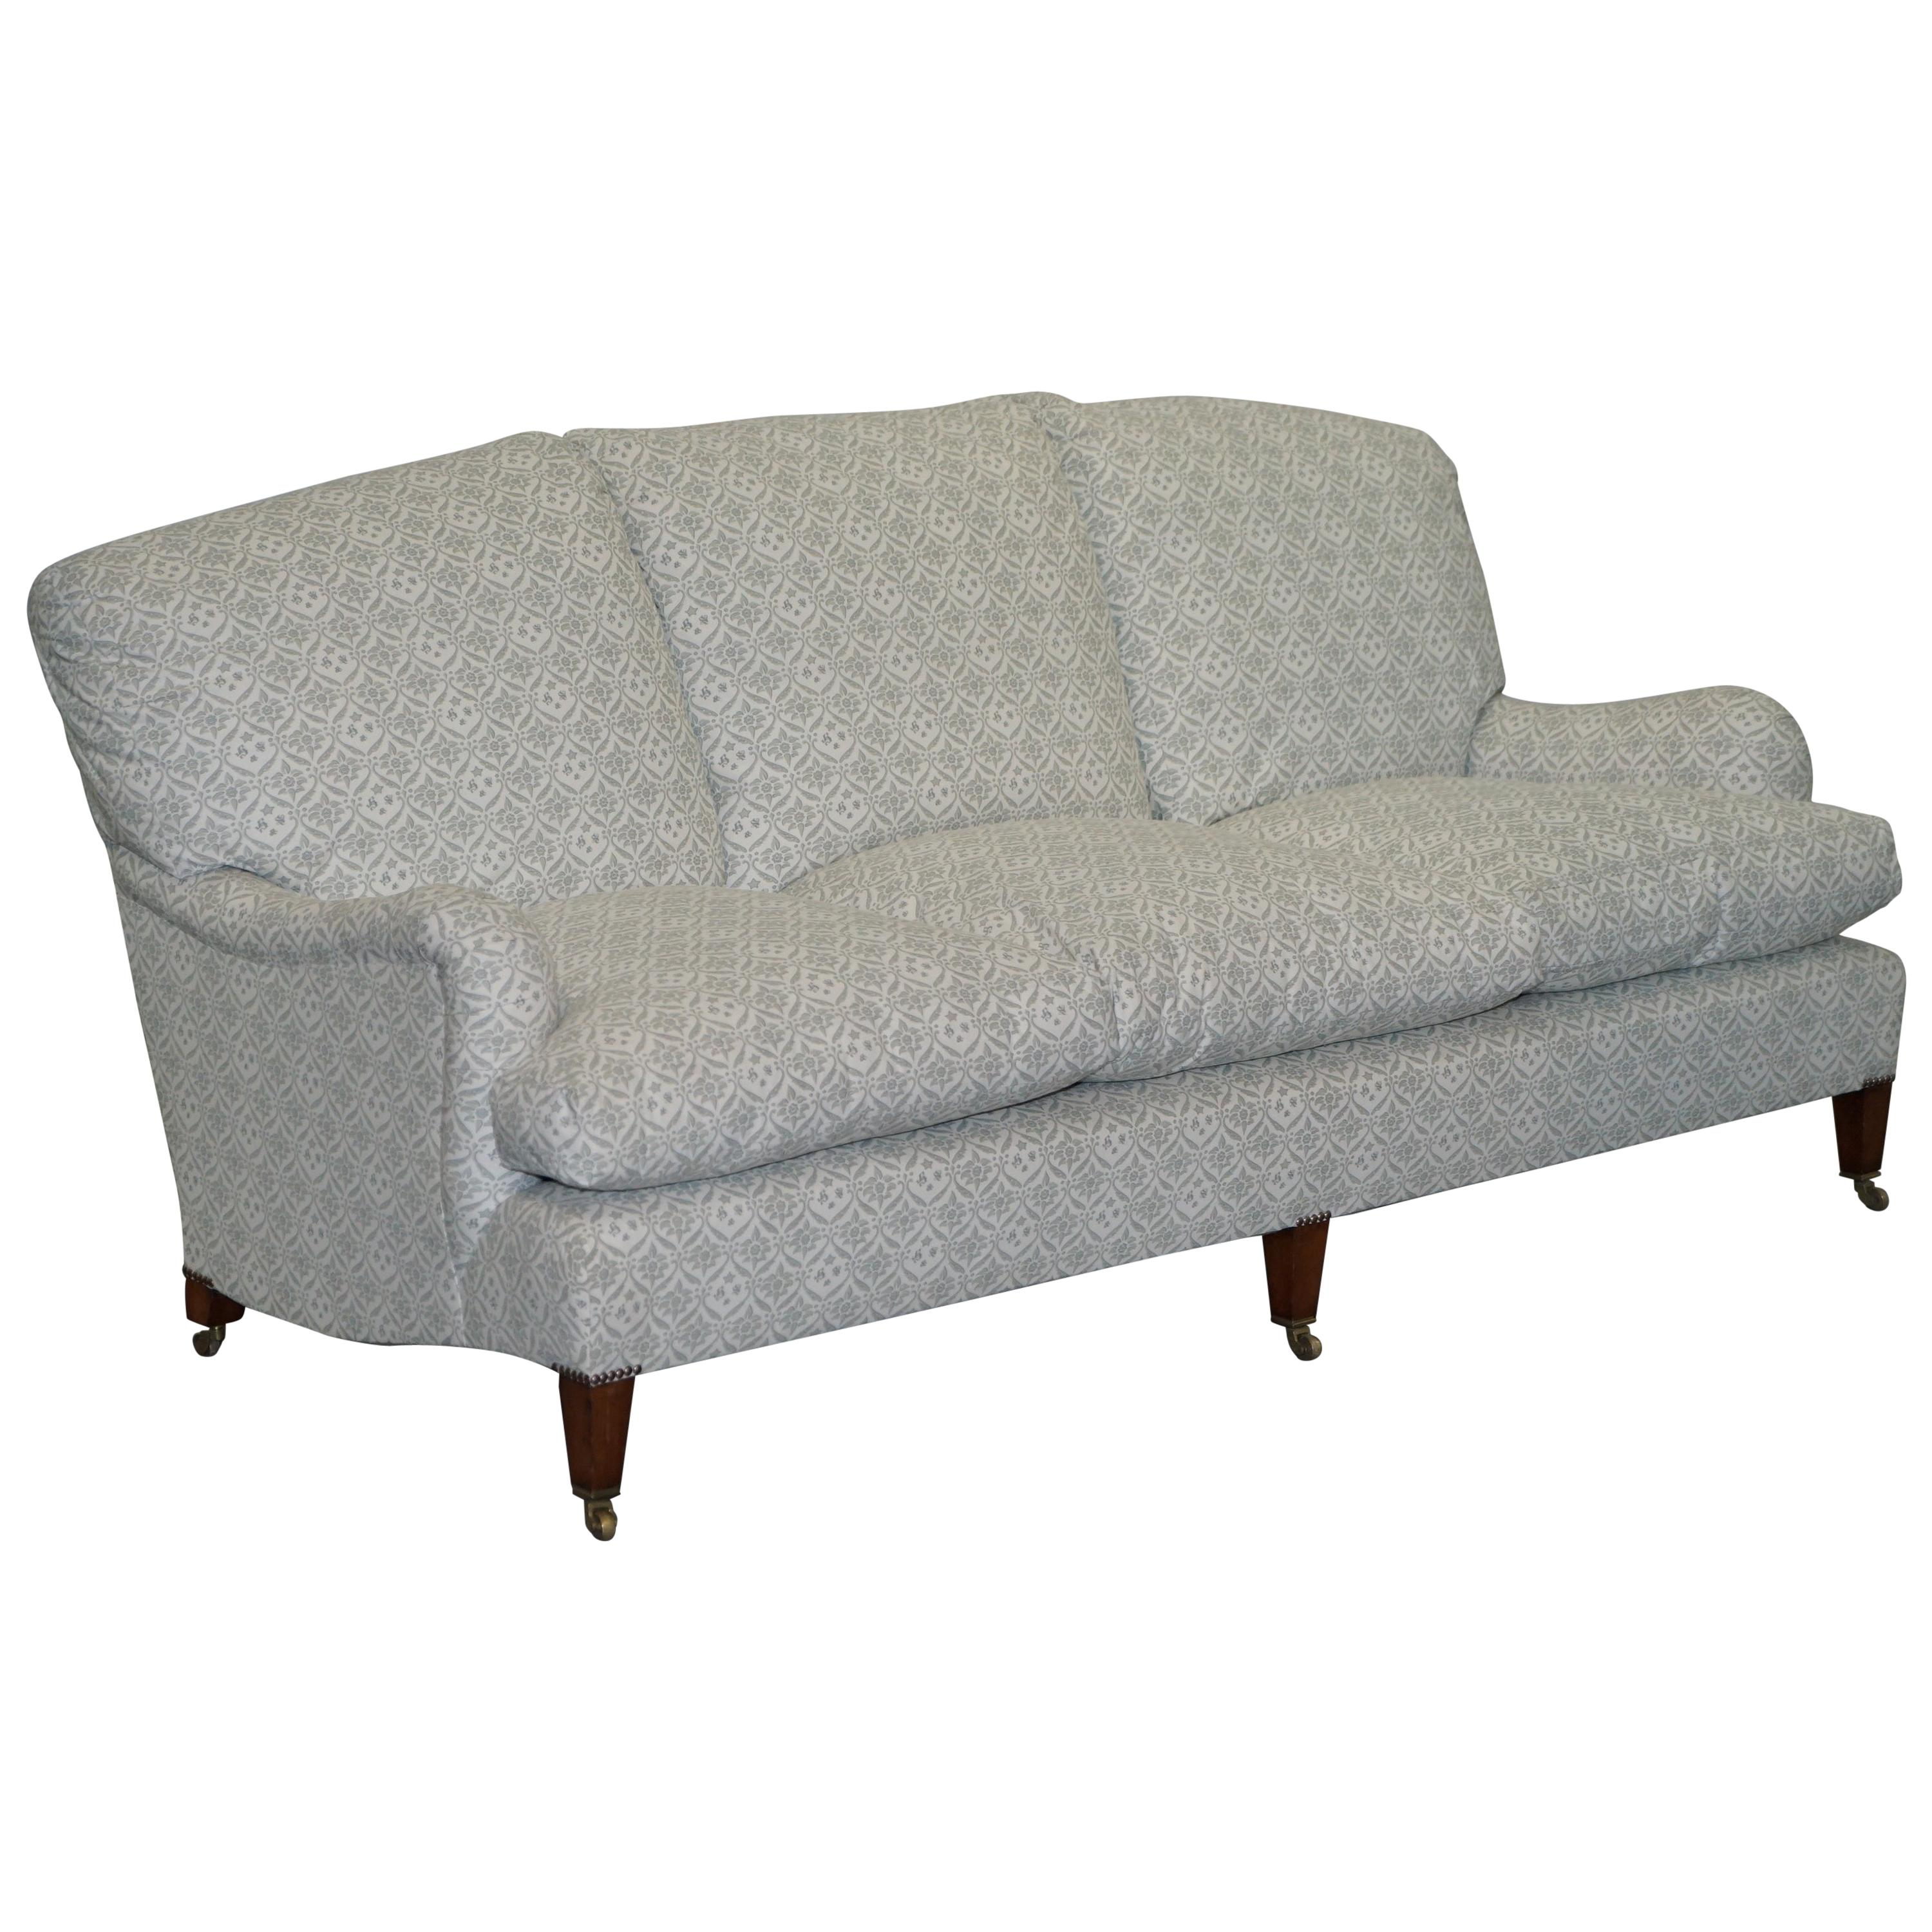 1 of 2 Howard & Sons Fully Stamped Sofa Feather Filled Feather Cushions Ticking